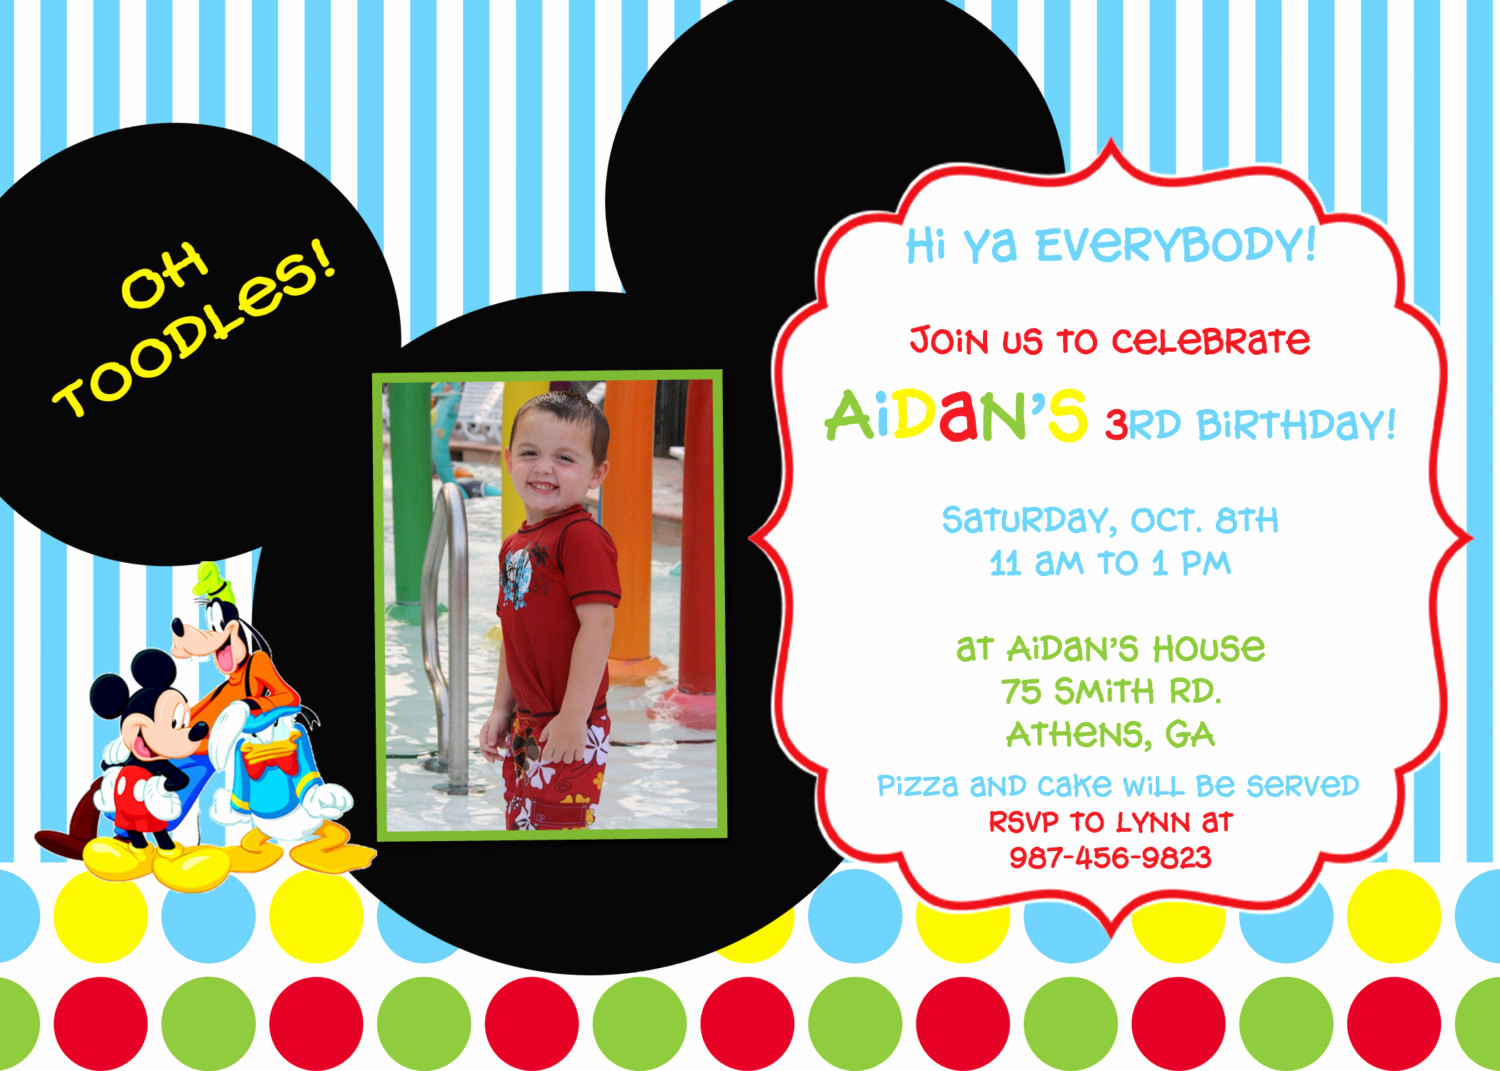 Mickey Mouse Club House Invitation Beautiful Mickey Mouse Clubhouse Birthday Party Invitation